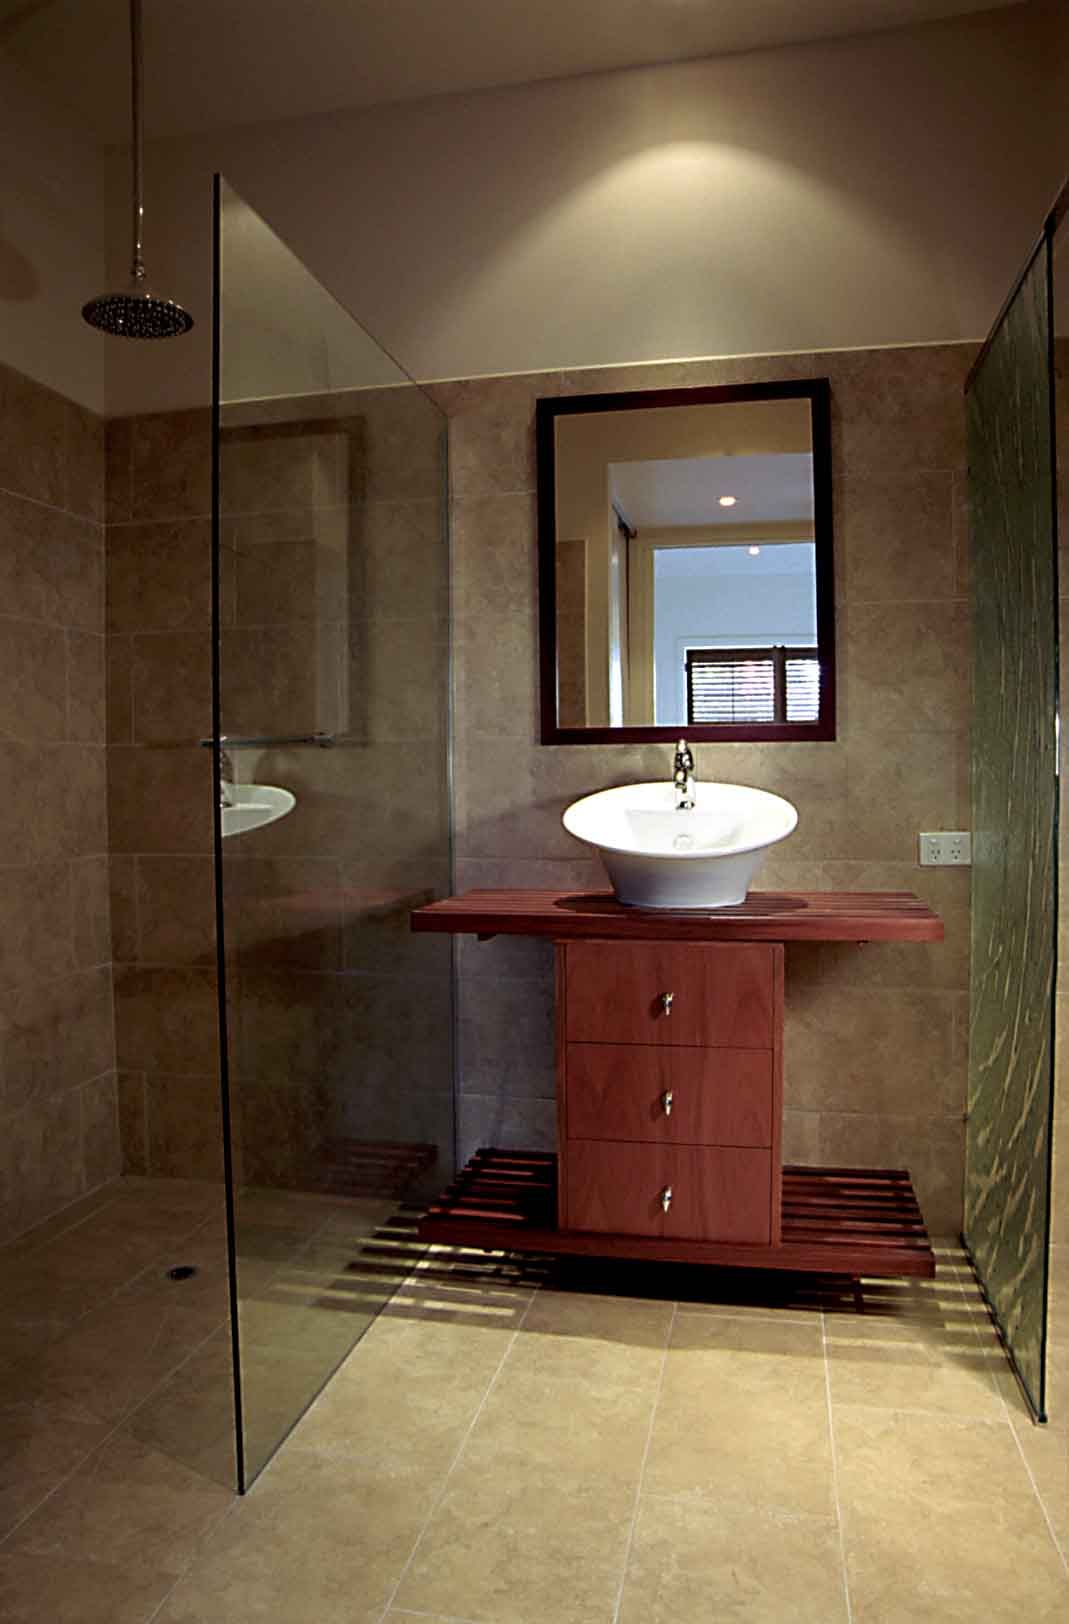 Wet room design for small bathrooms small ensuite for Small ensuite bathroom